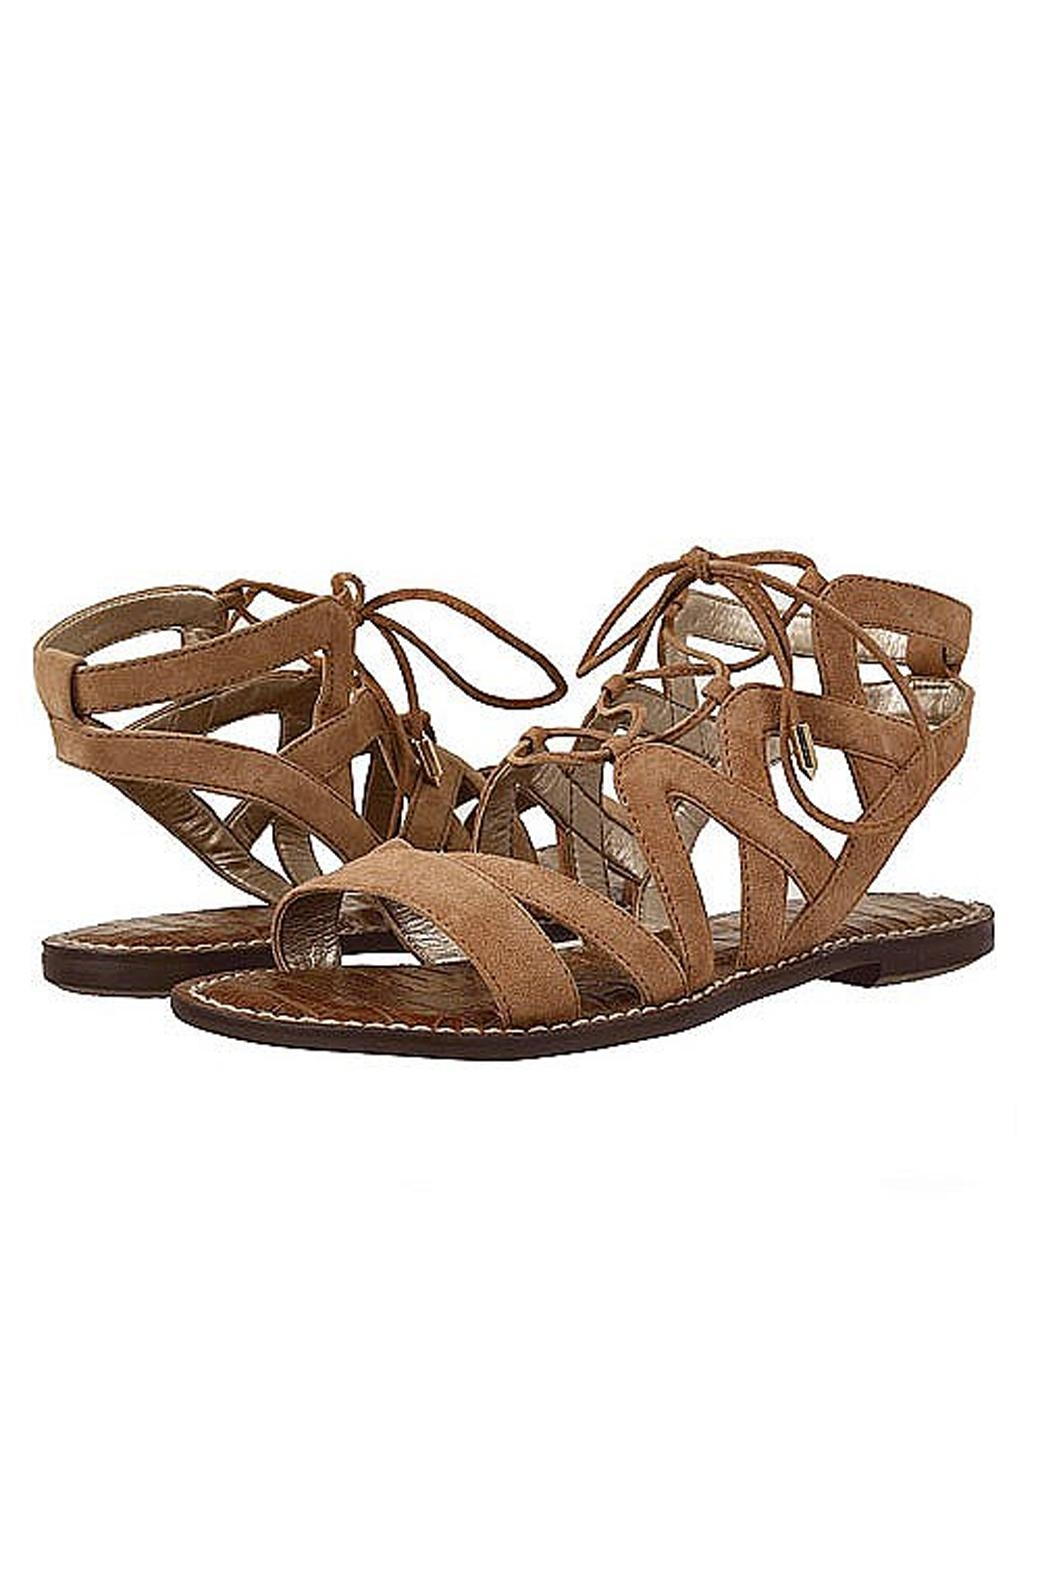 Sam Edelman Brown Lace Up Sandals - Front Cropped Image